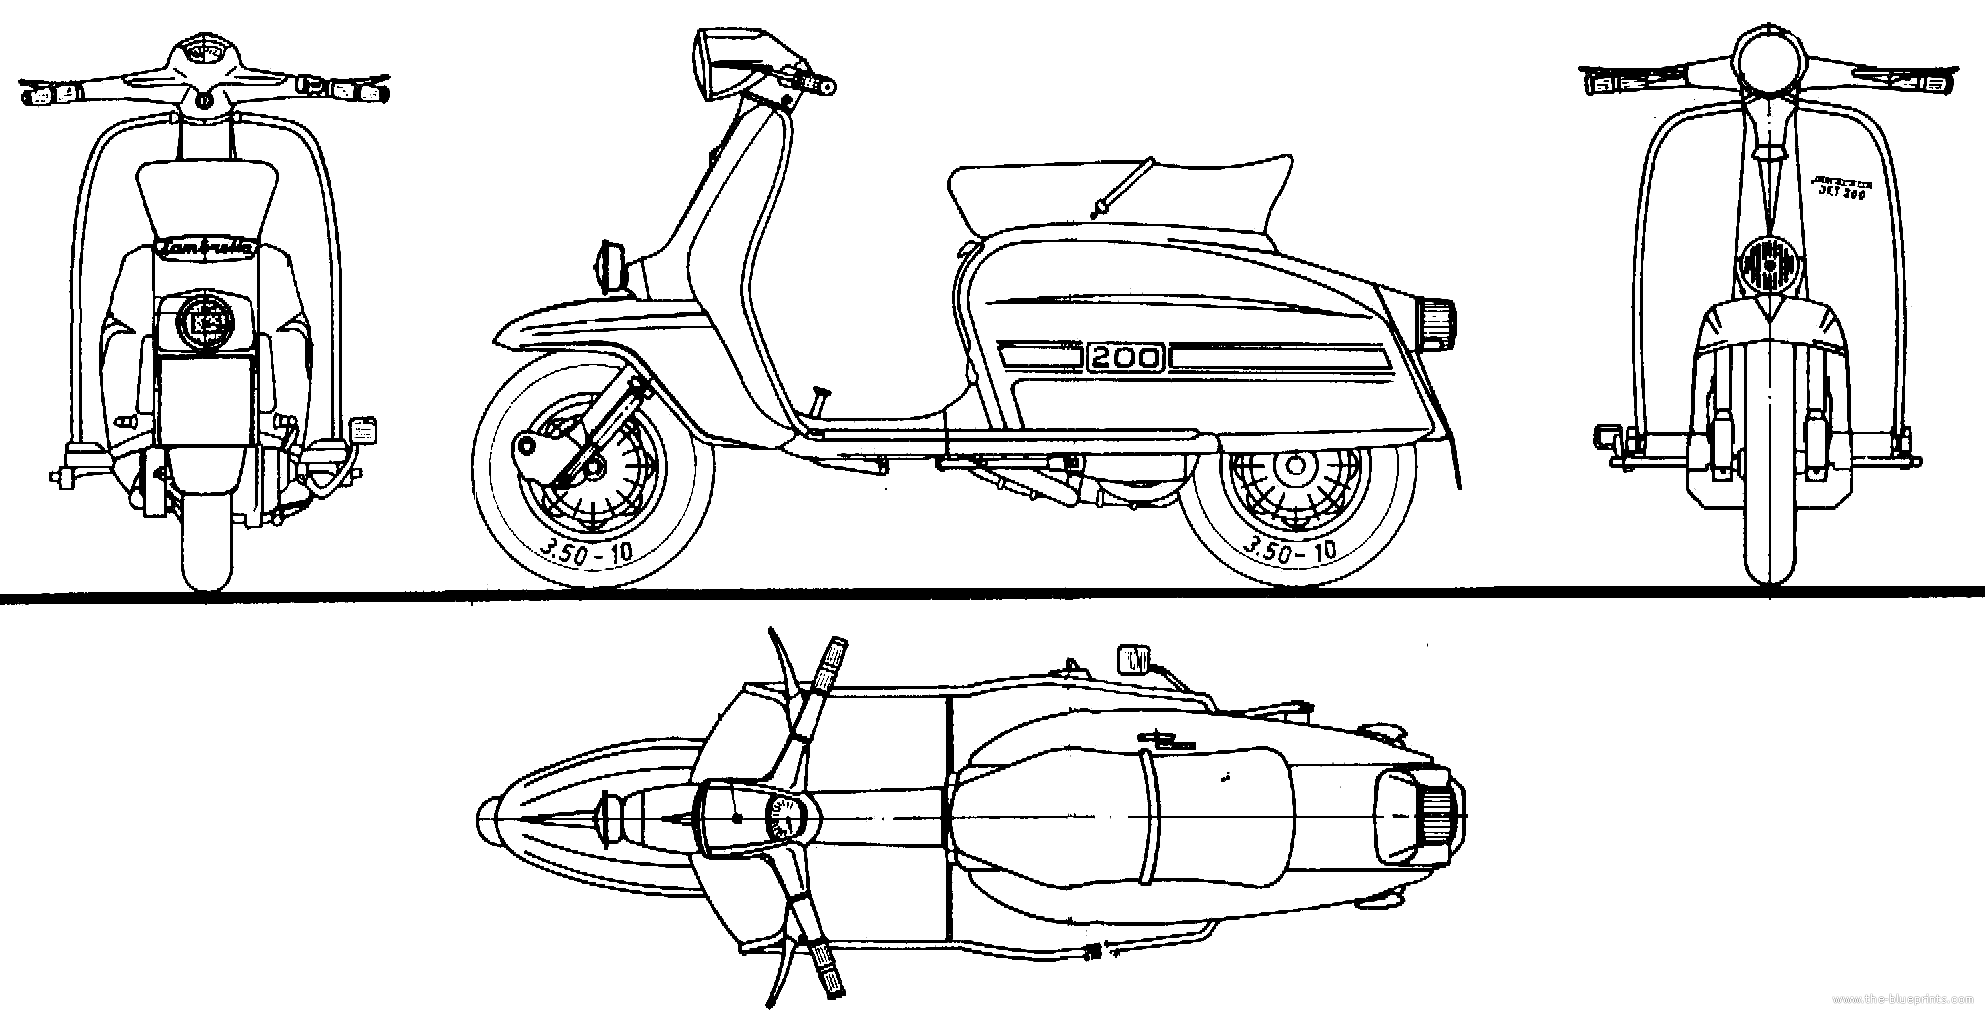 Motorcycle bike blueprints for 3d modeling cgfrog for Create blueprints online free